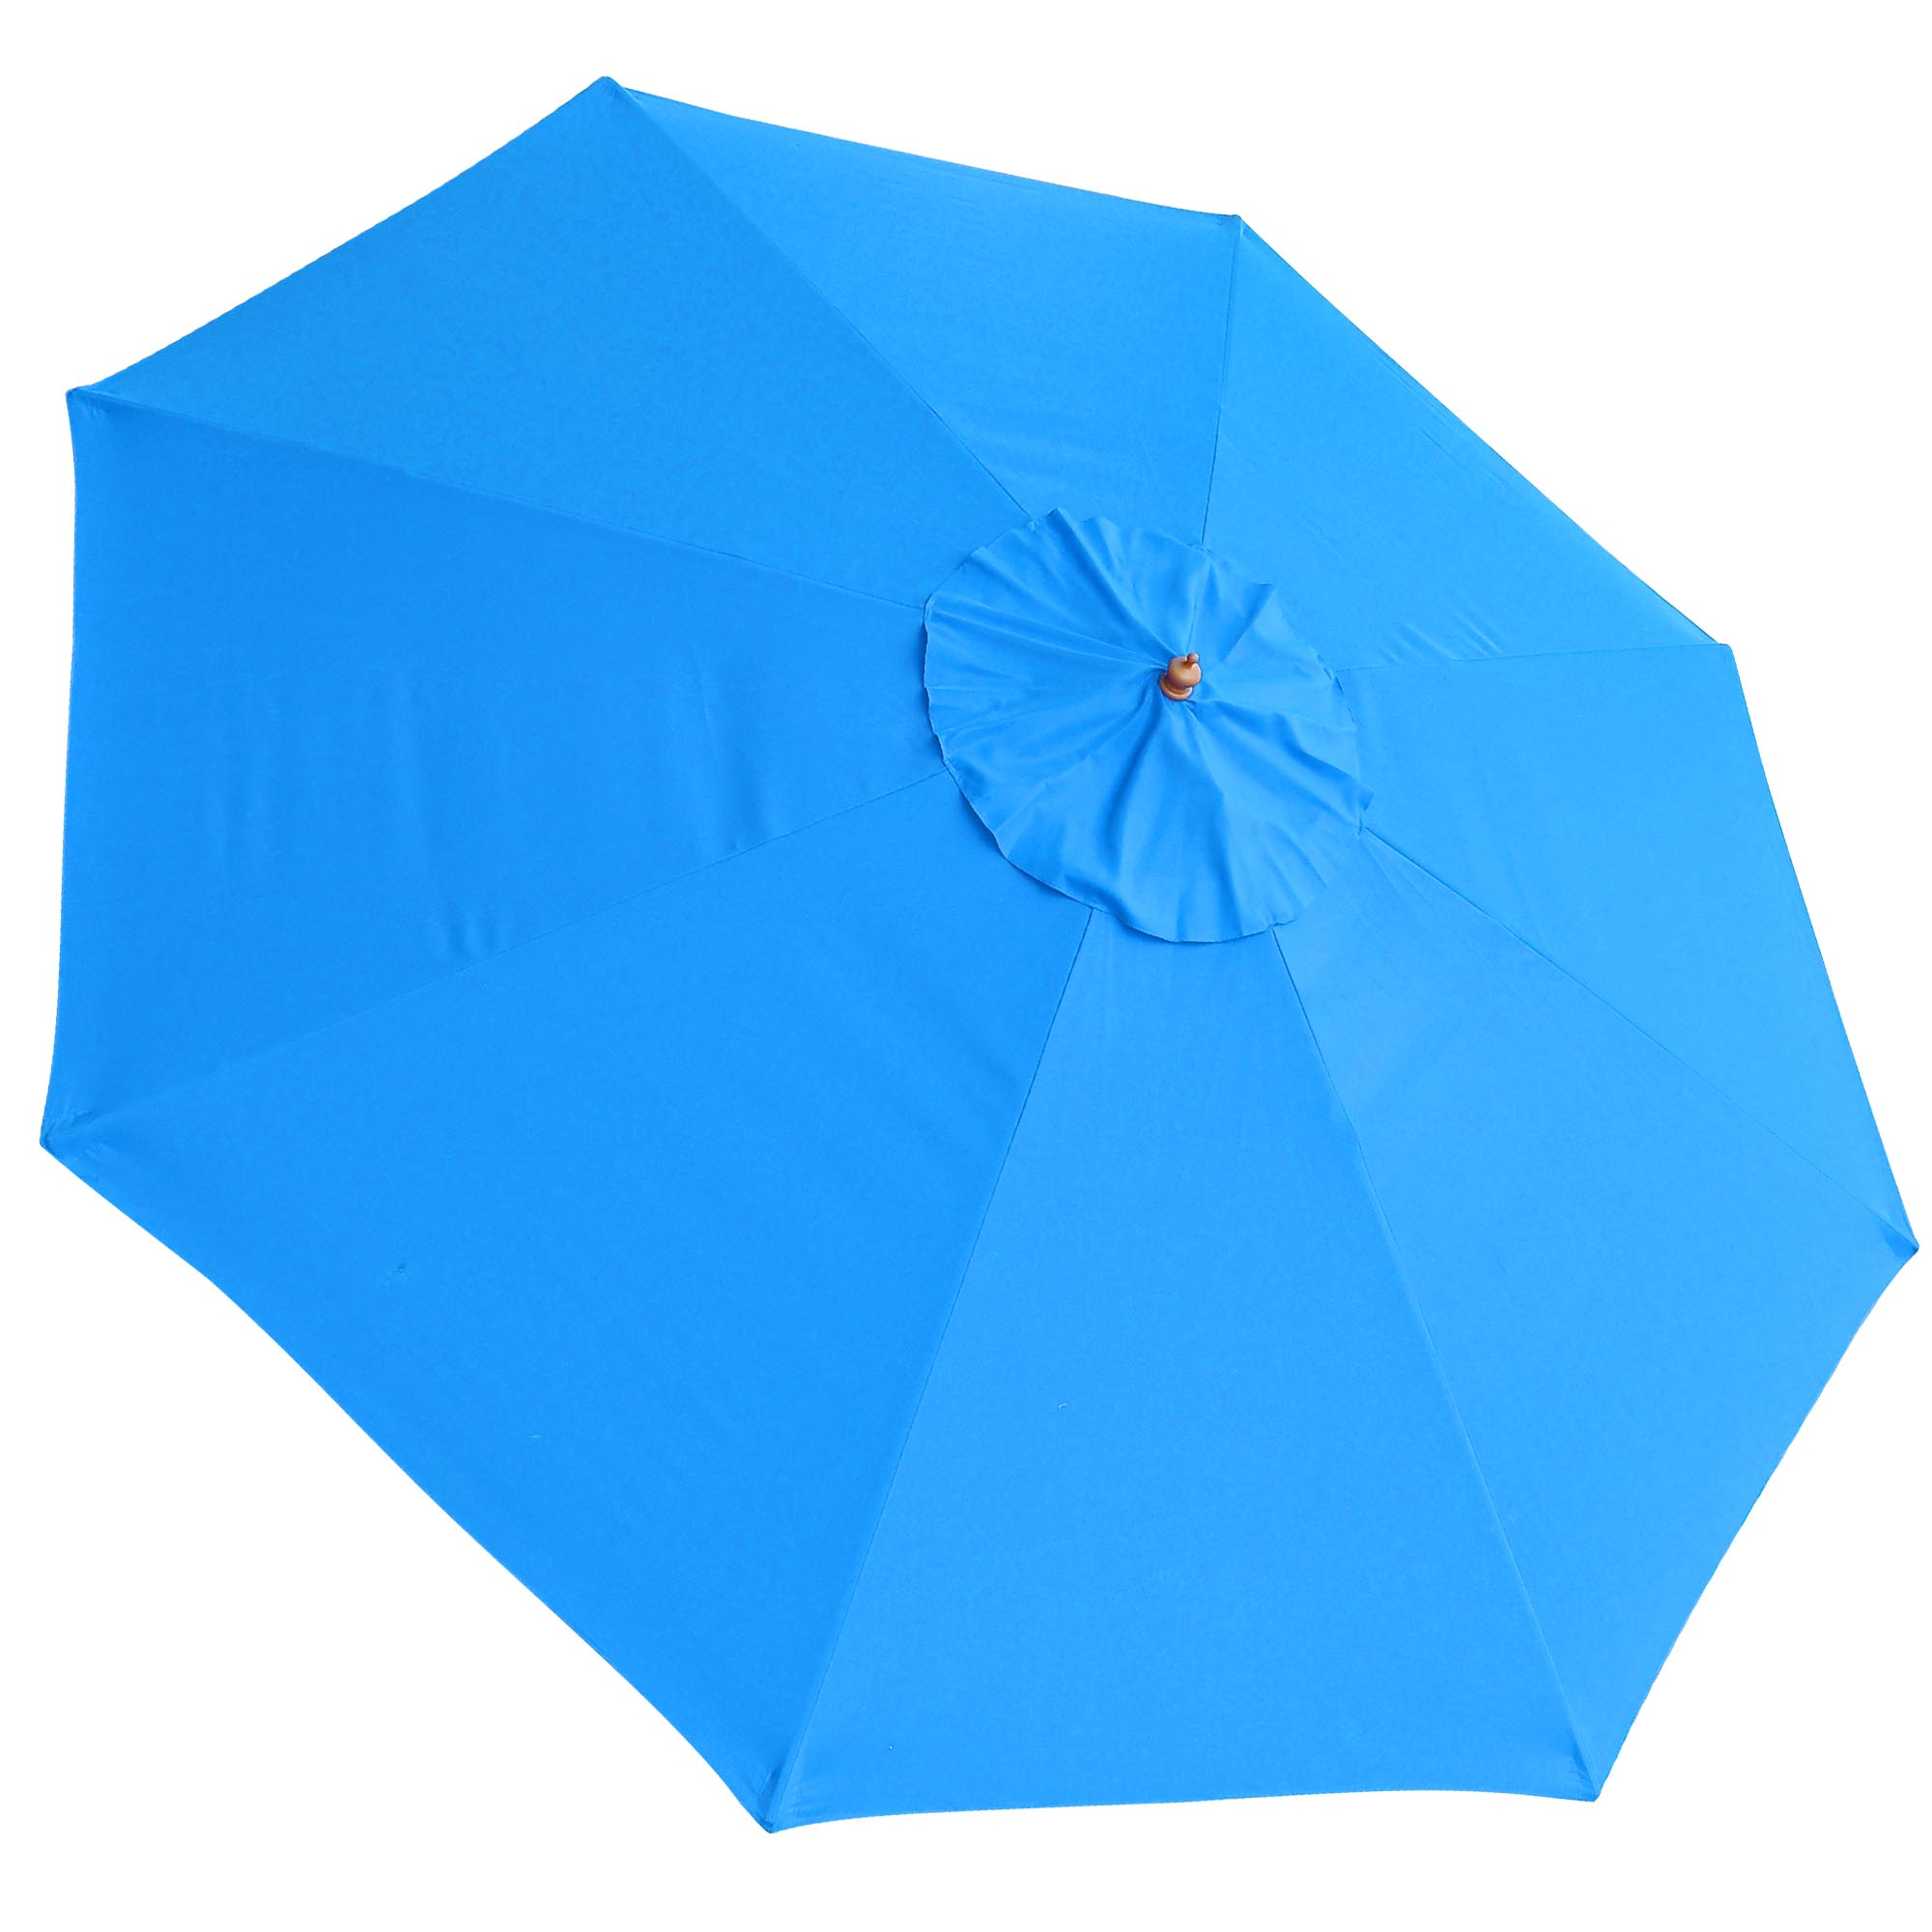 8-039-9-039-10-039-13-039-Umbrella-Replacement-Canopy-8-Rib-Outdoor-Patio-Top-Cover-Only-Opt thumbnail 40